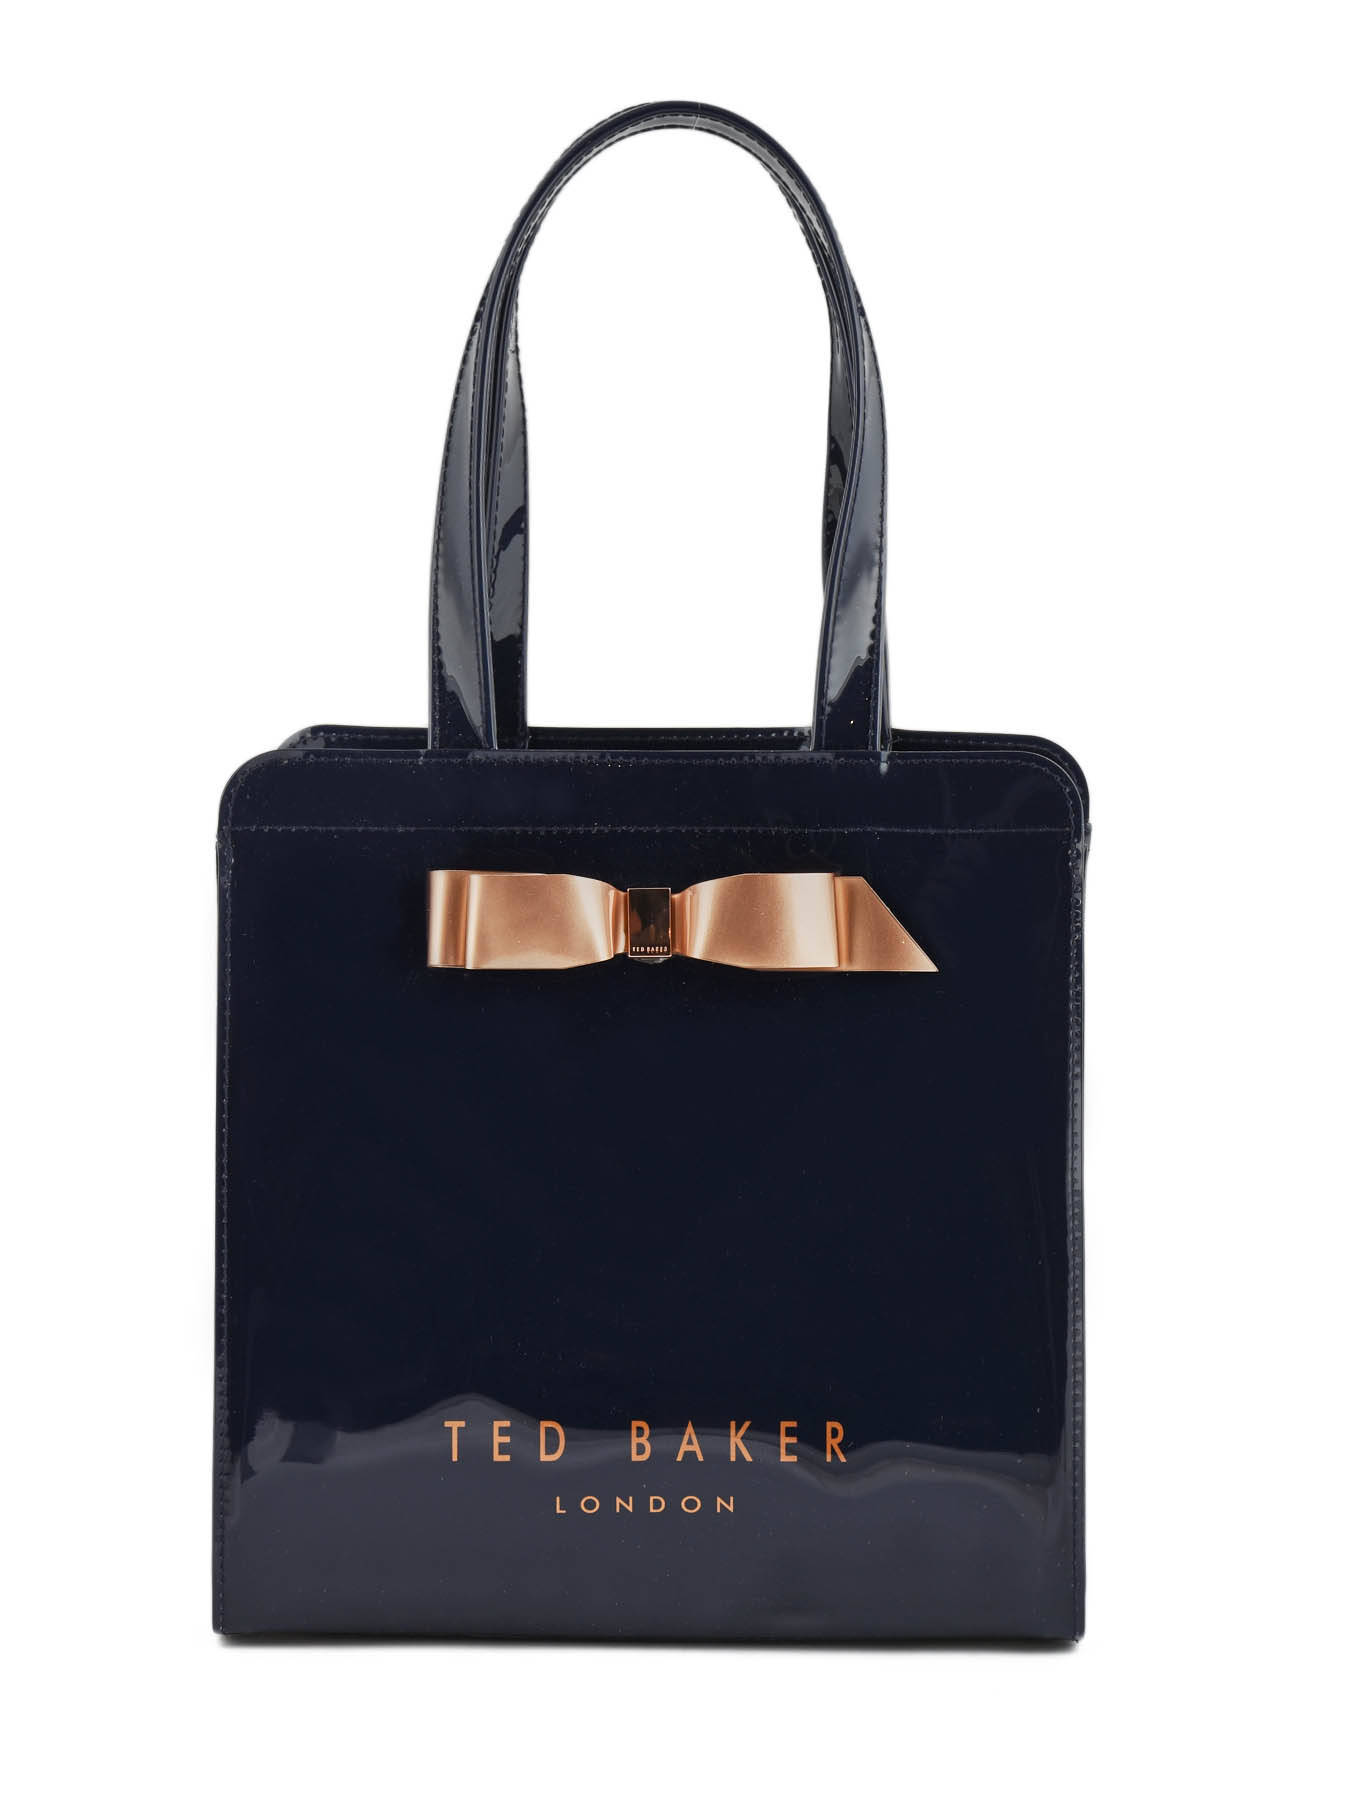 Ted Baker Tote Xh9wxb05 151045 Best Prices